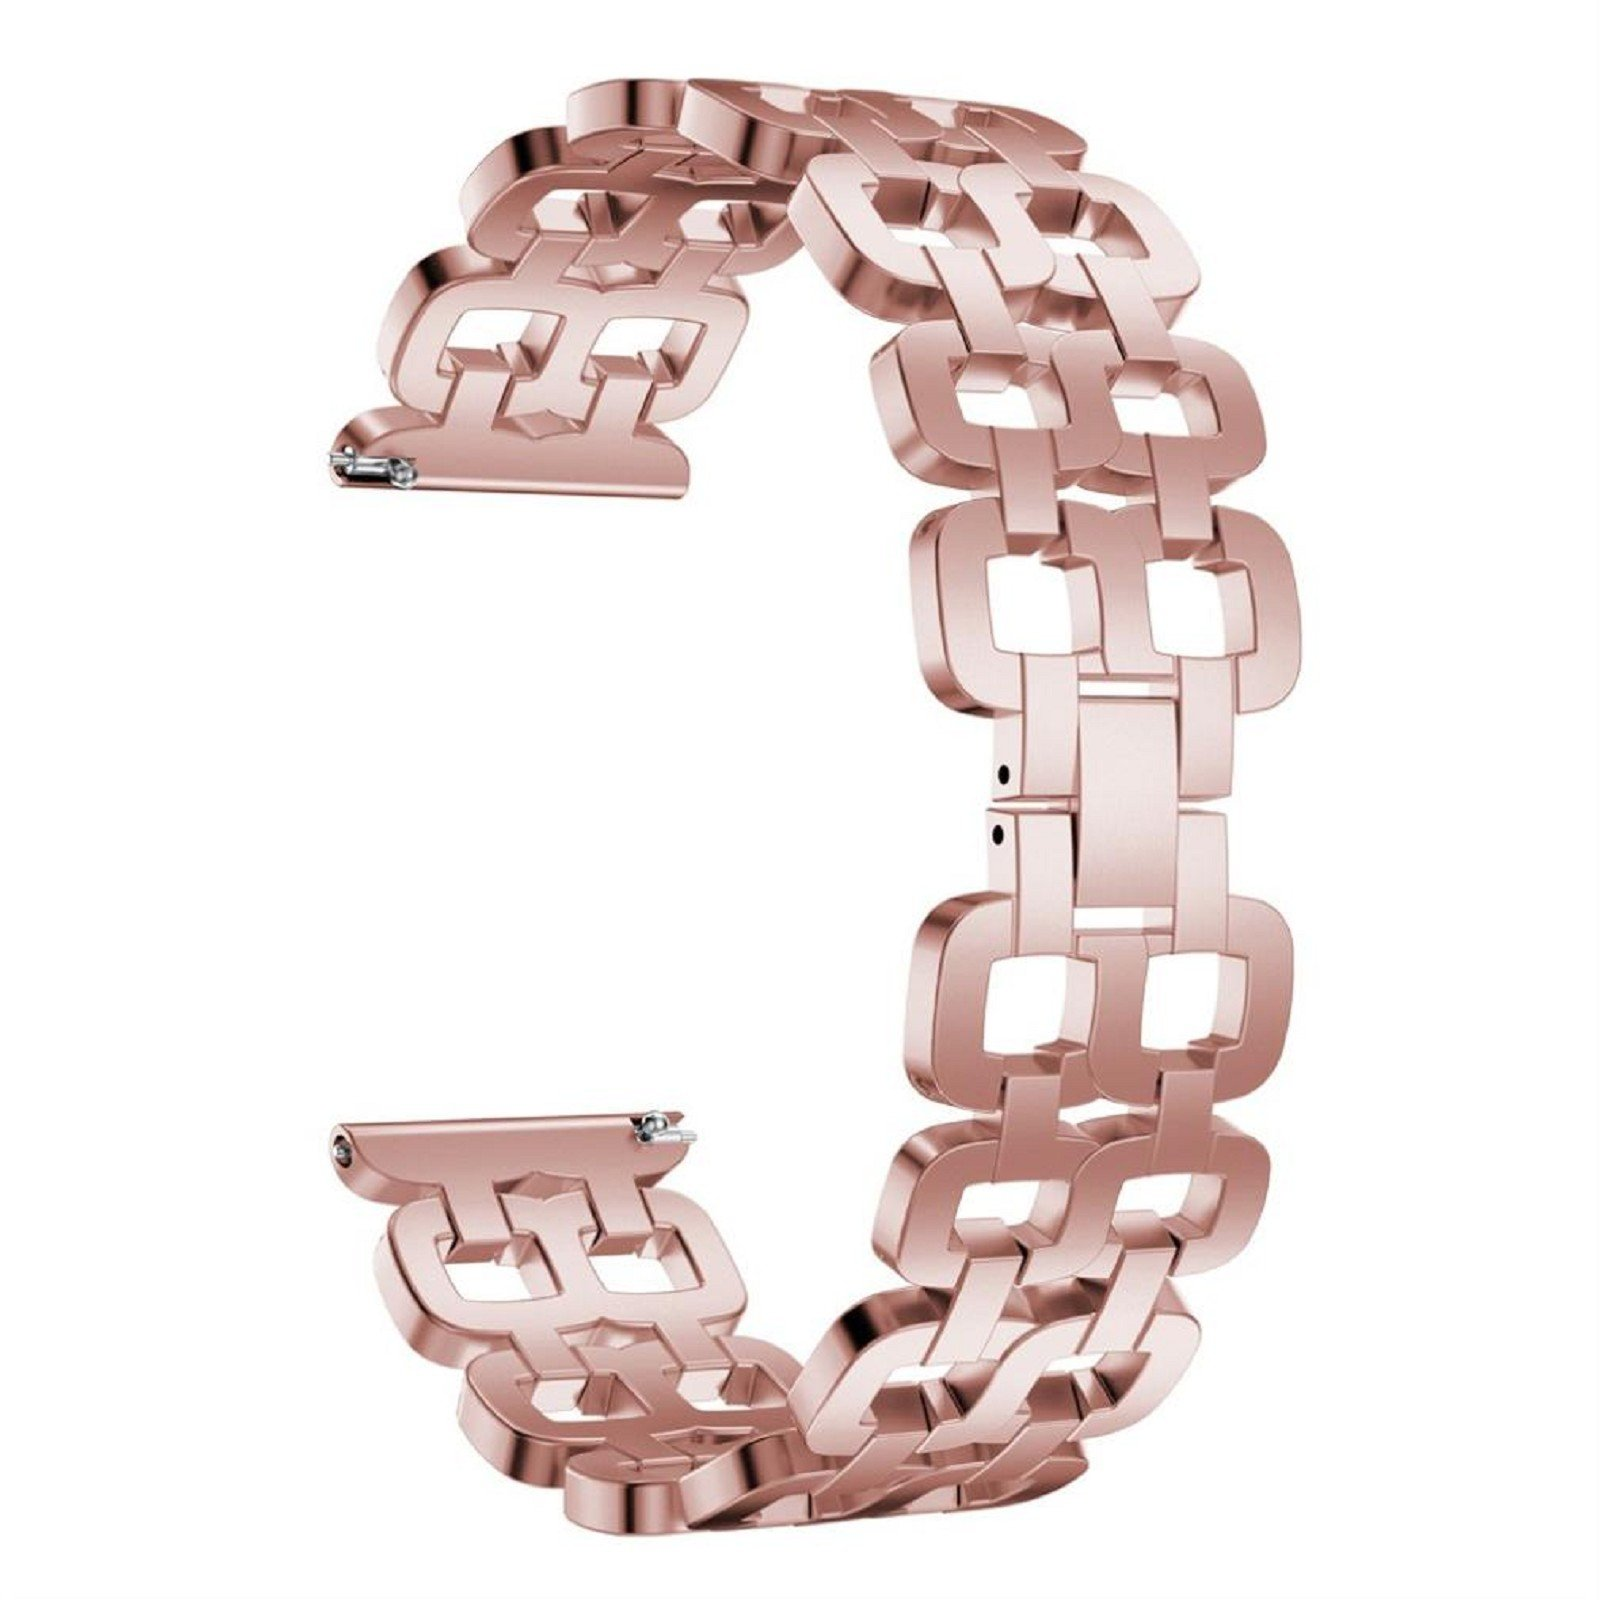 Owill Stainless Steel Durable Chain Style Bracelet Smart Watch Band Strap For Samsung Gear S3, Band Length about 179mm (Pink)